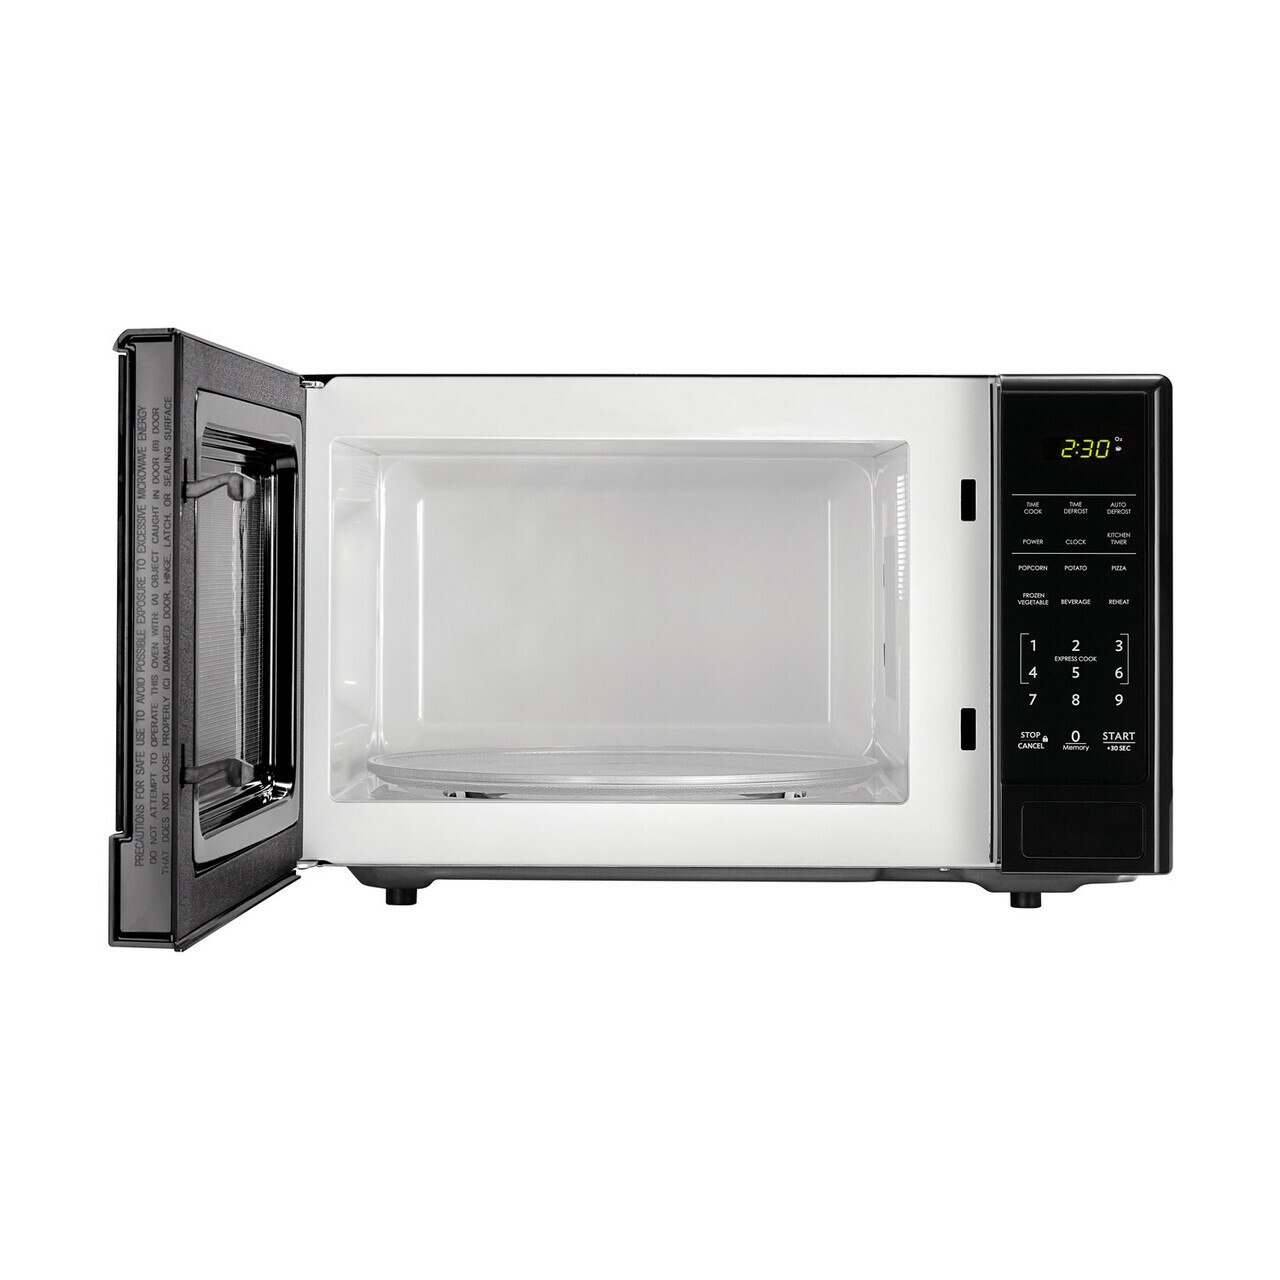 1.1 cu. ft. Sharp Black Carousel Countertop Microwave (SMC1111AB) – front view with door open